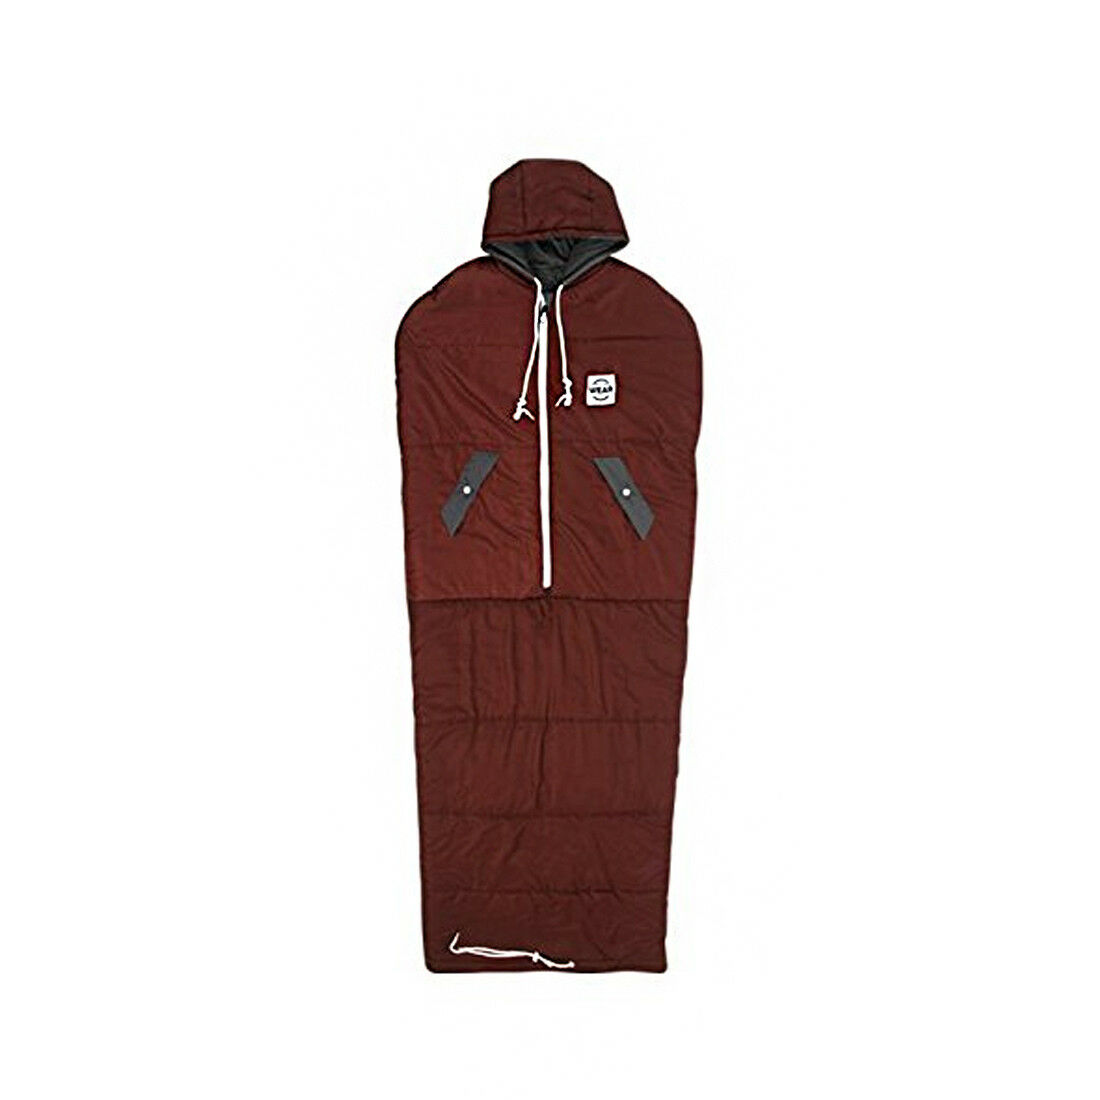 VINSONMASSIF Wearable Sleeping Bag for Camping Hiking Outdoors  Burgundy